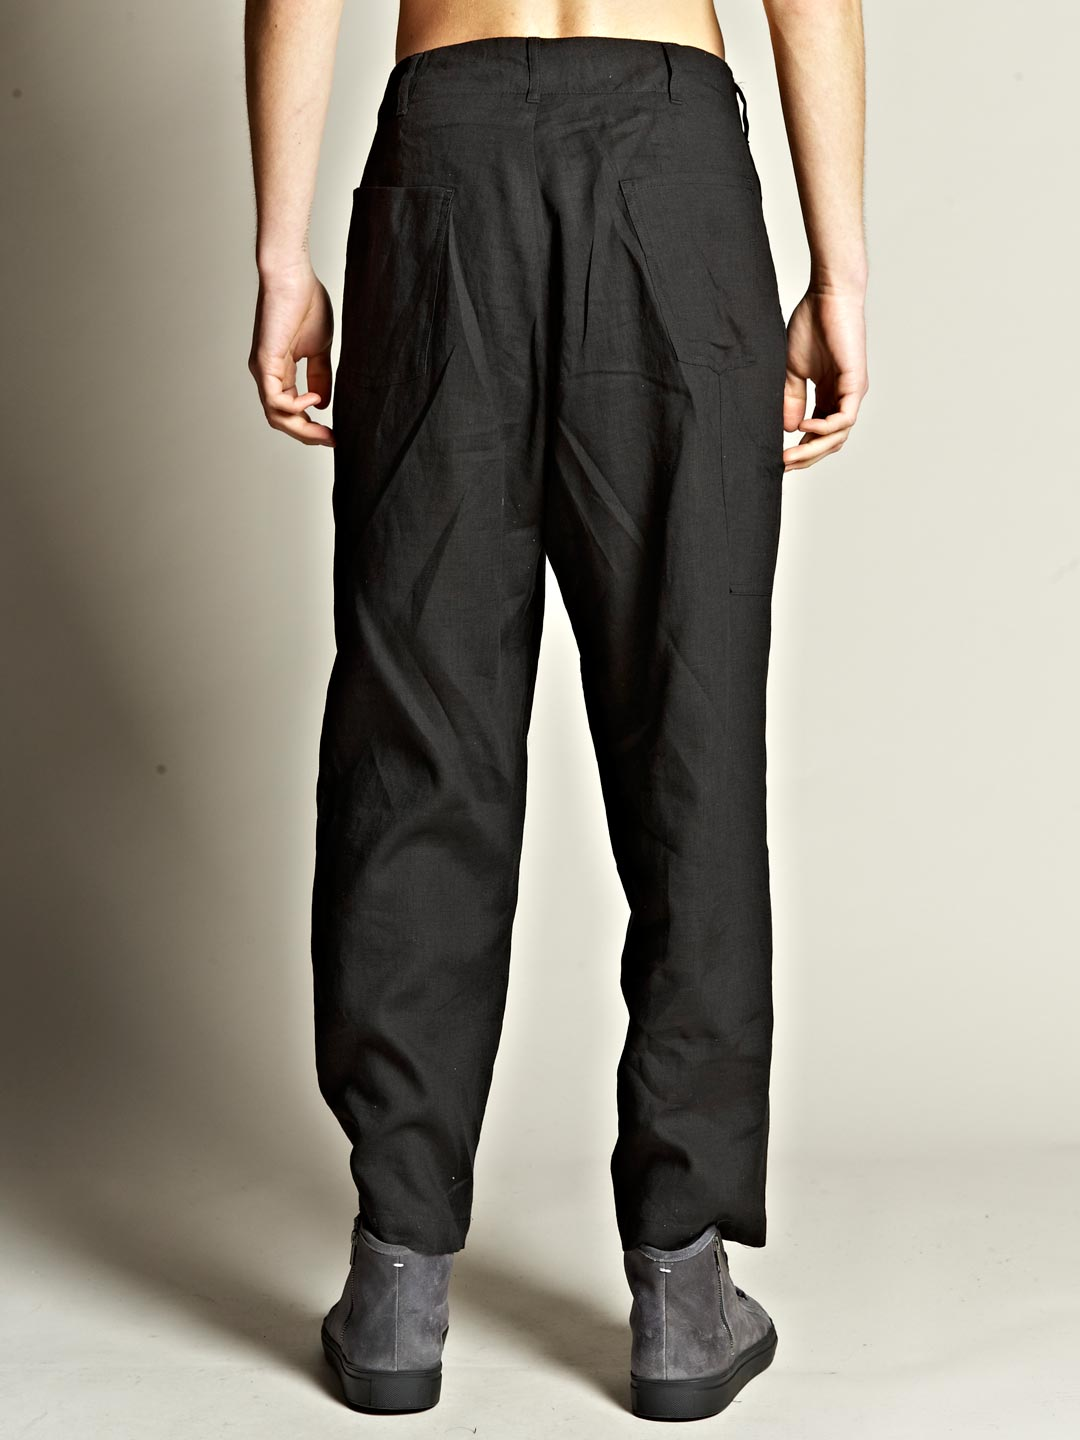 Yohji Yamamoto Pour Homme Mens Tuck Pants In Black For Men